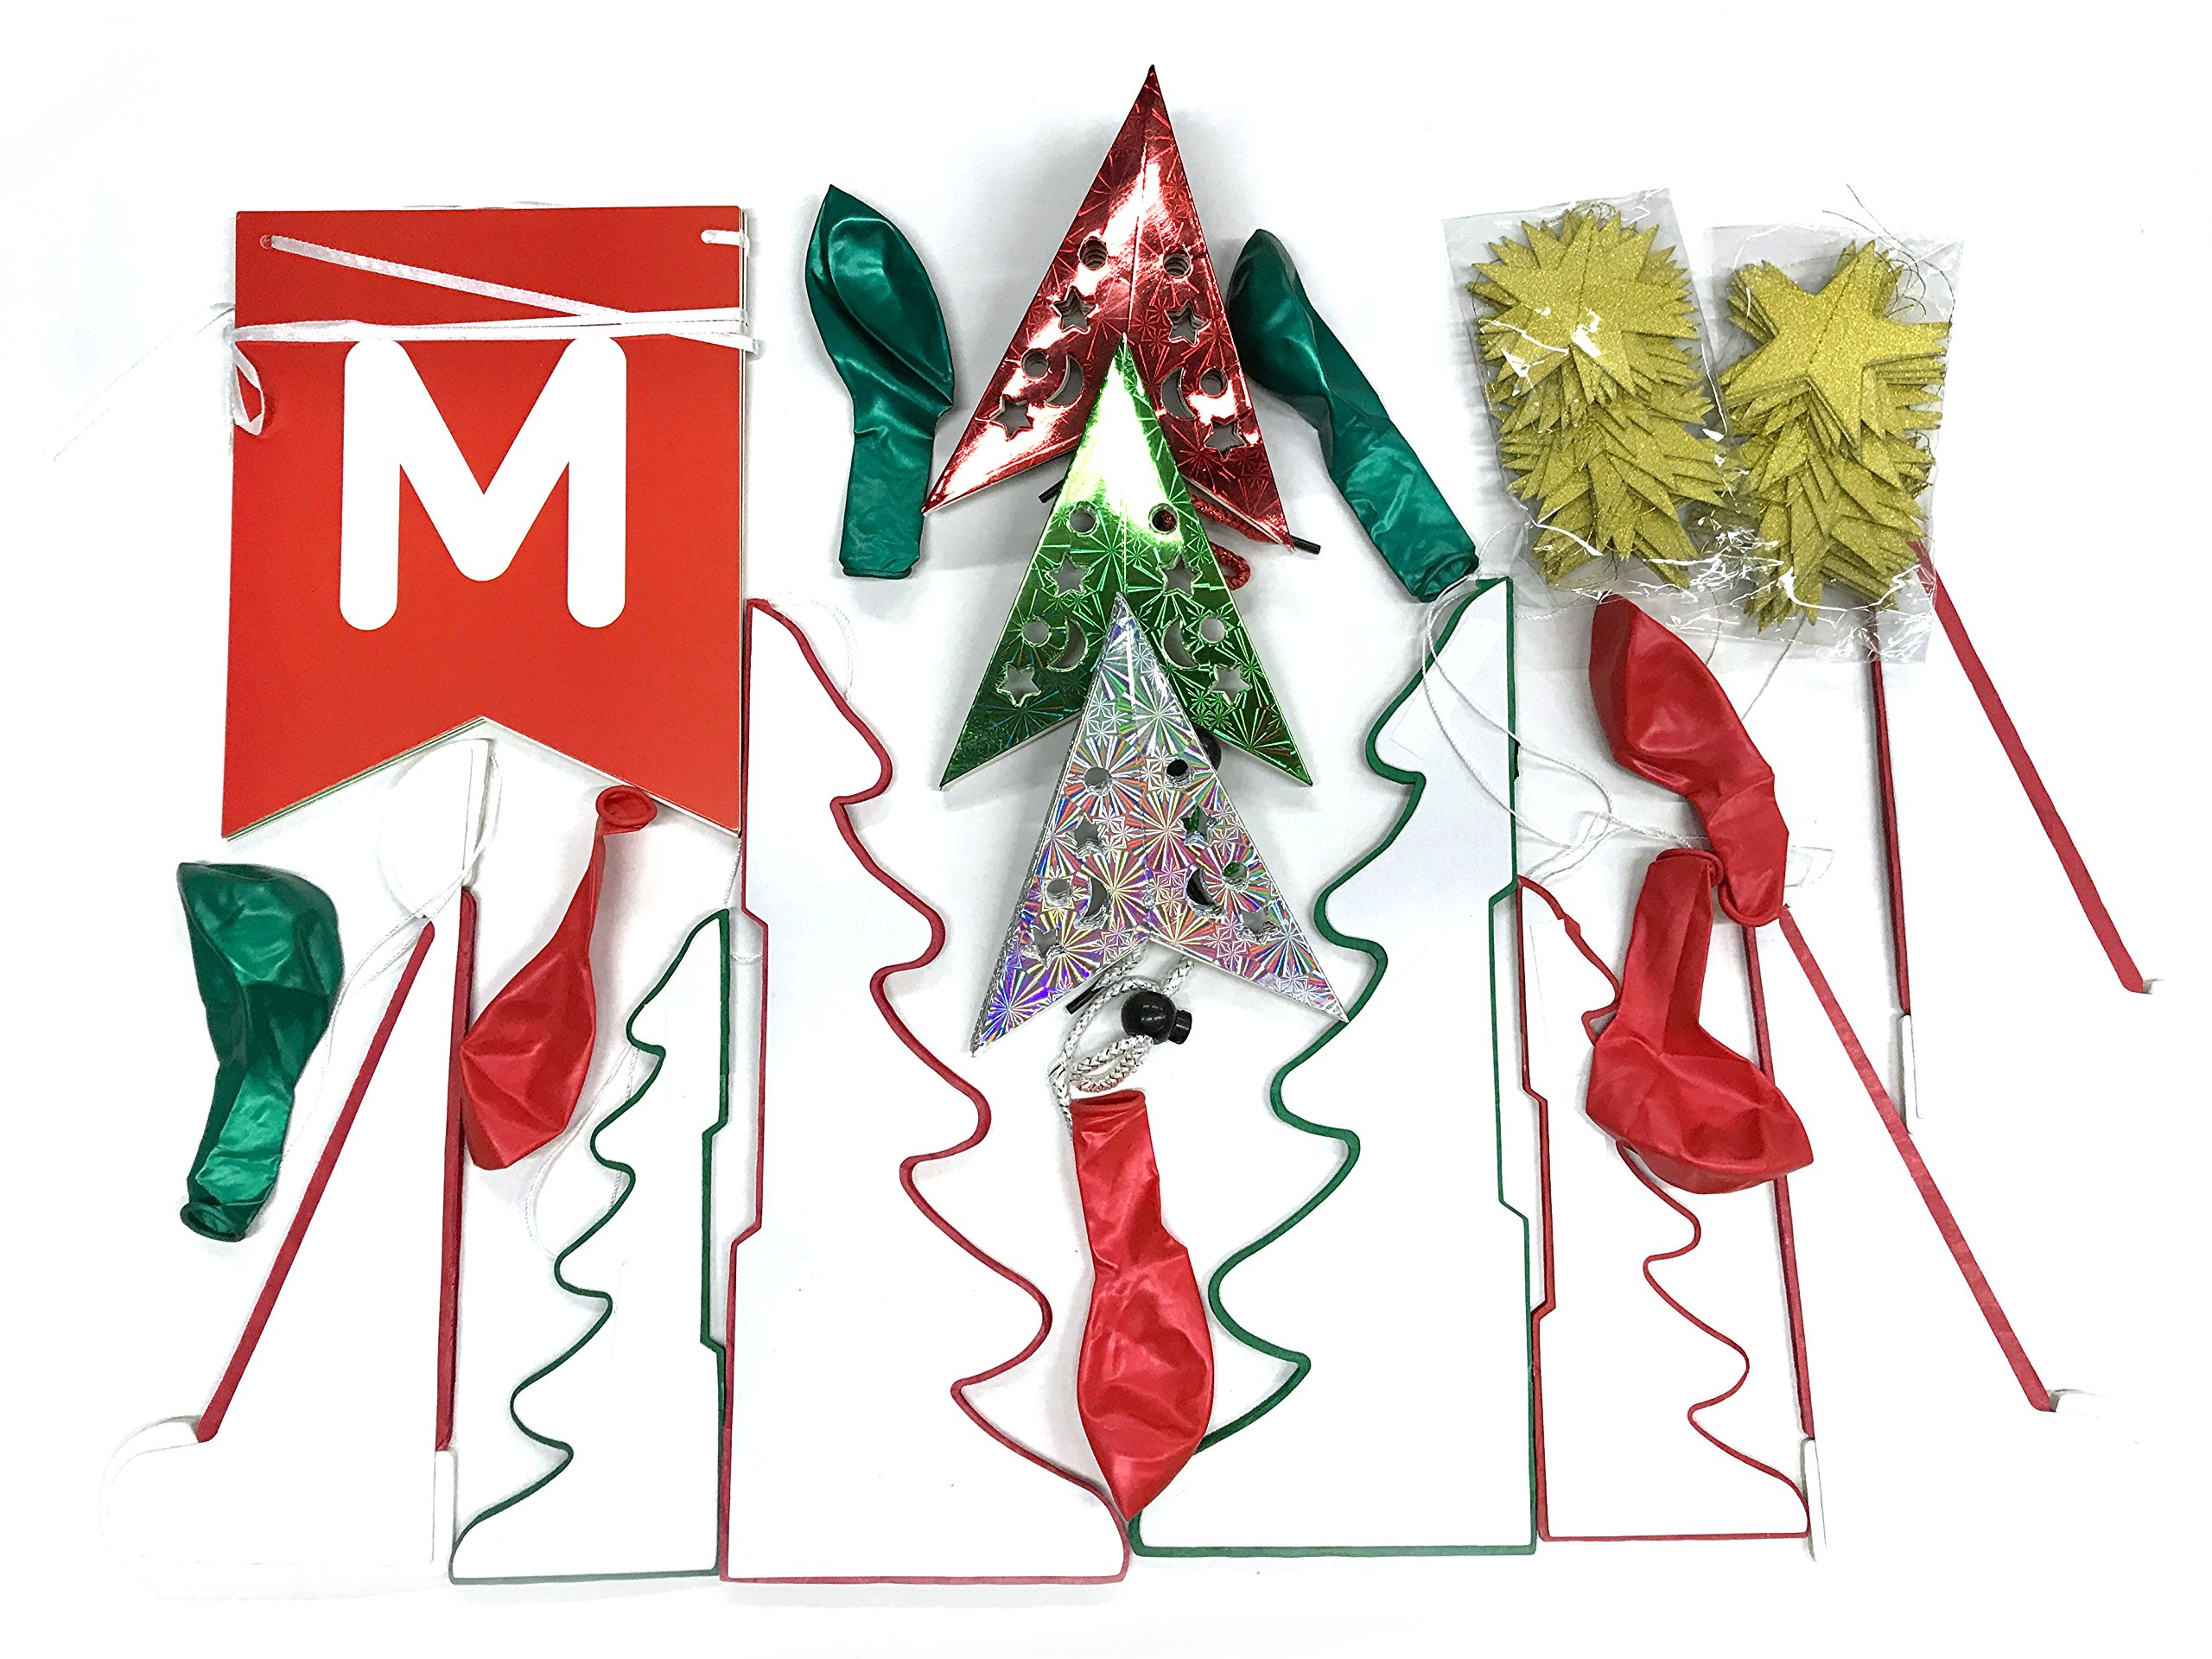 yotruth 25pcs Christmas Party Paper Decorations for Party Indoor and Outdoor Include Handmade Paper Stars Latten Trees Honeycomb hat Balloon Festival Banner